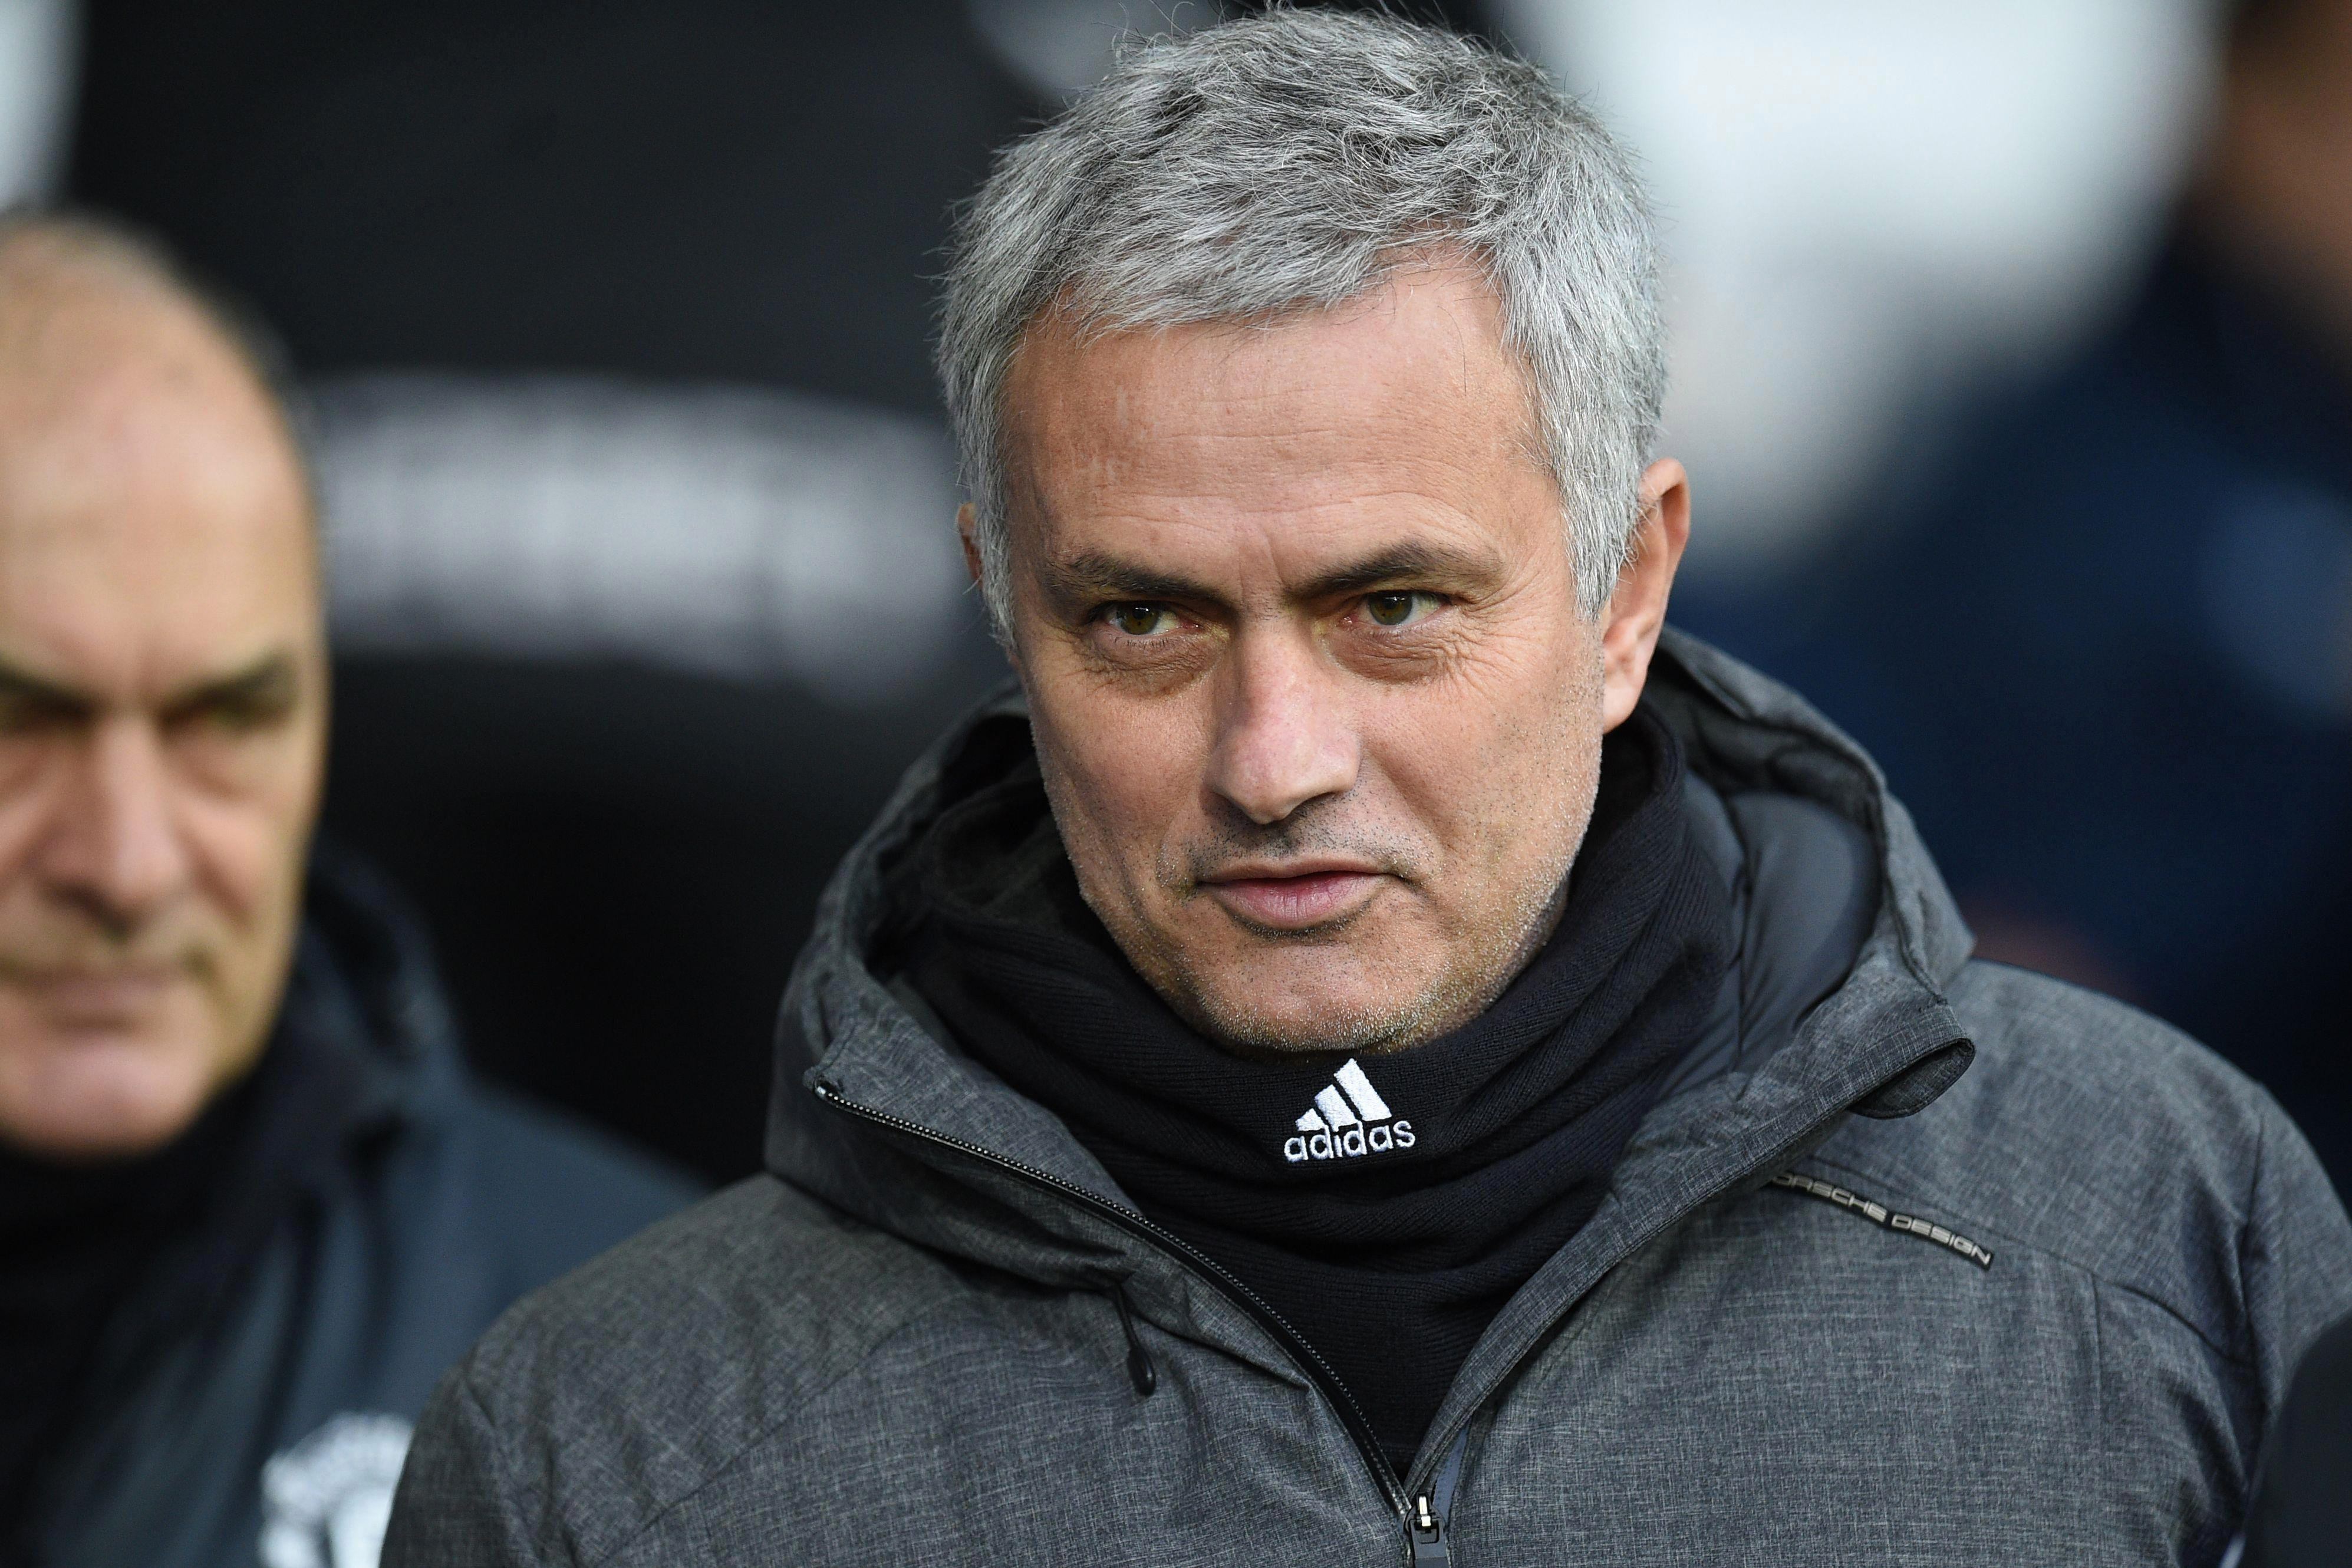 Jose Mourinho wants a reunion with Eden Hazard at Manchester United